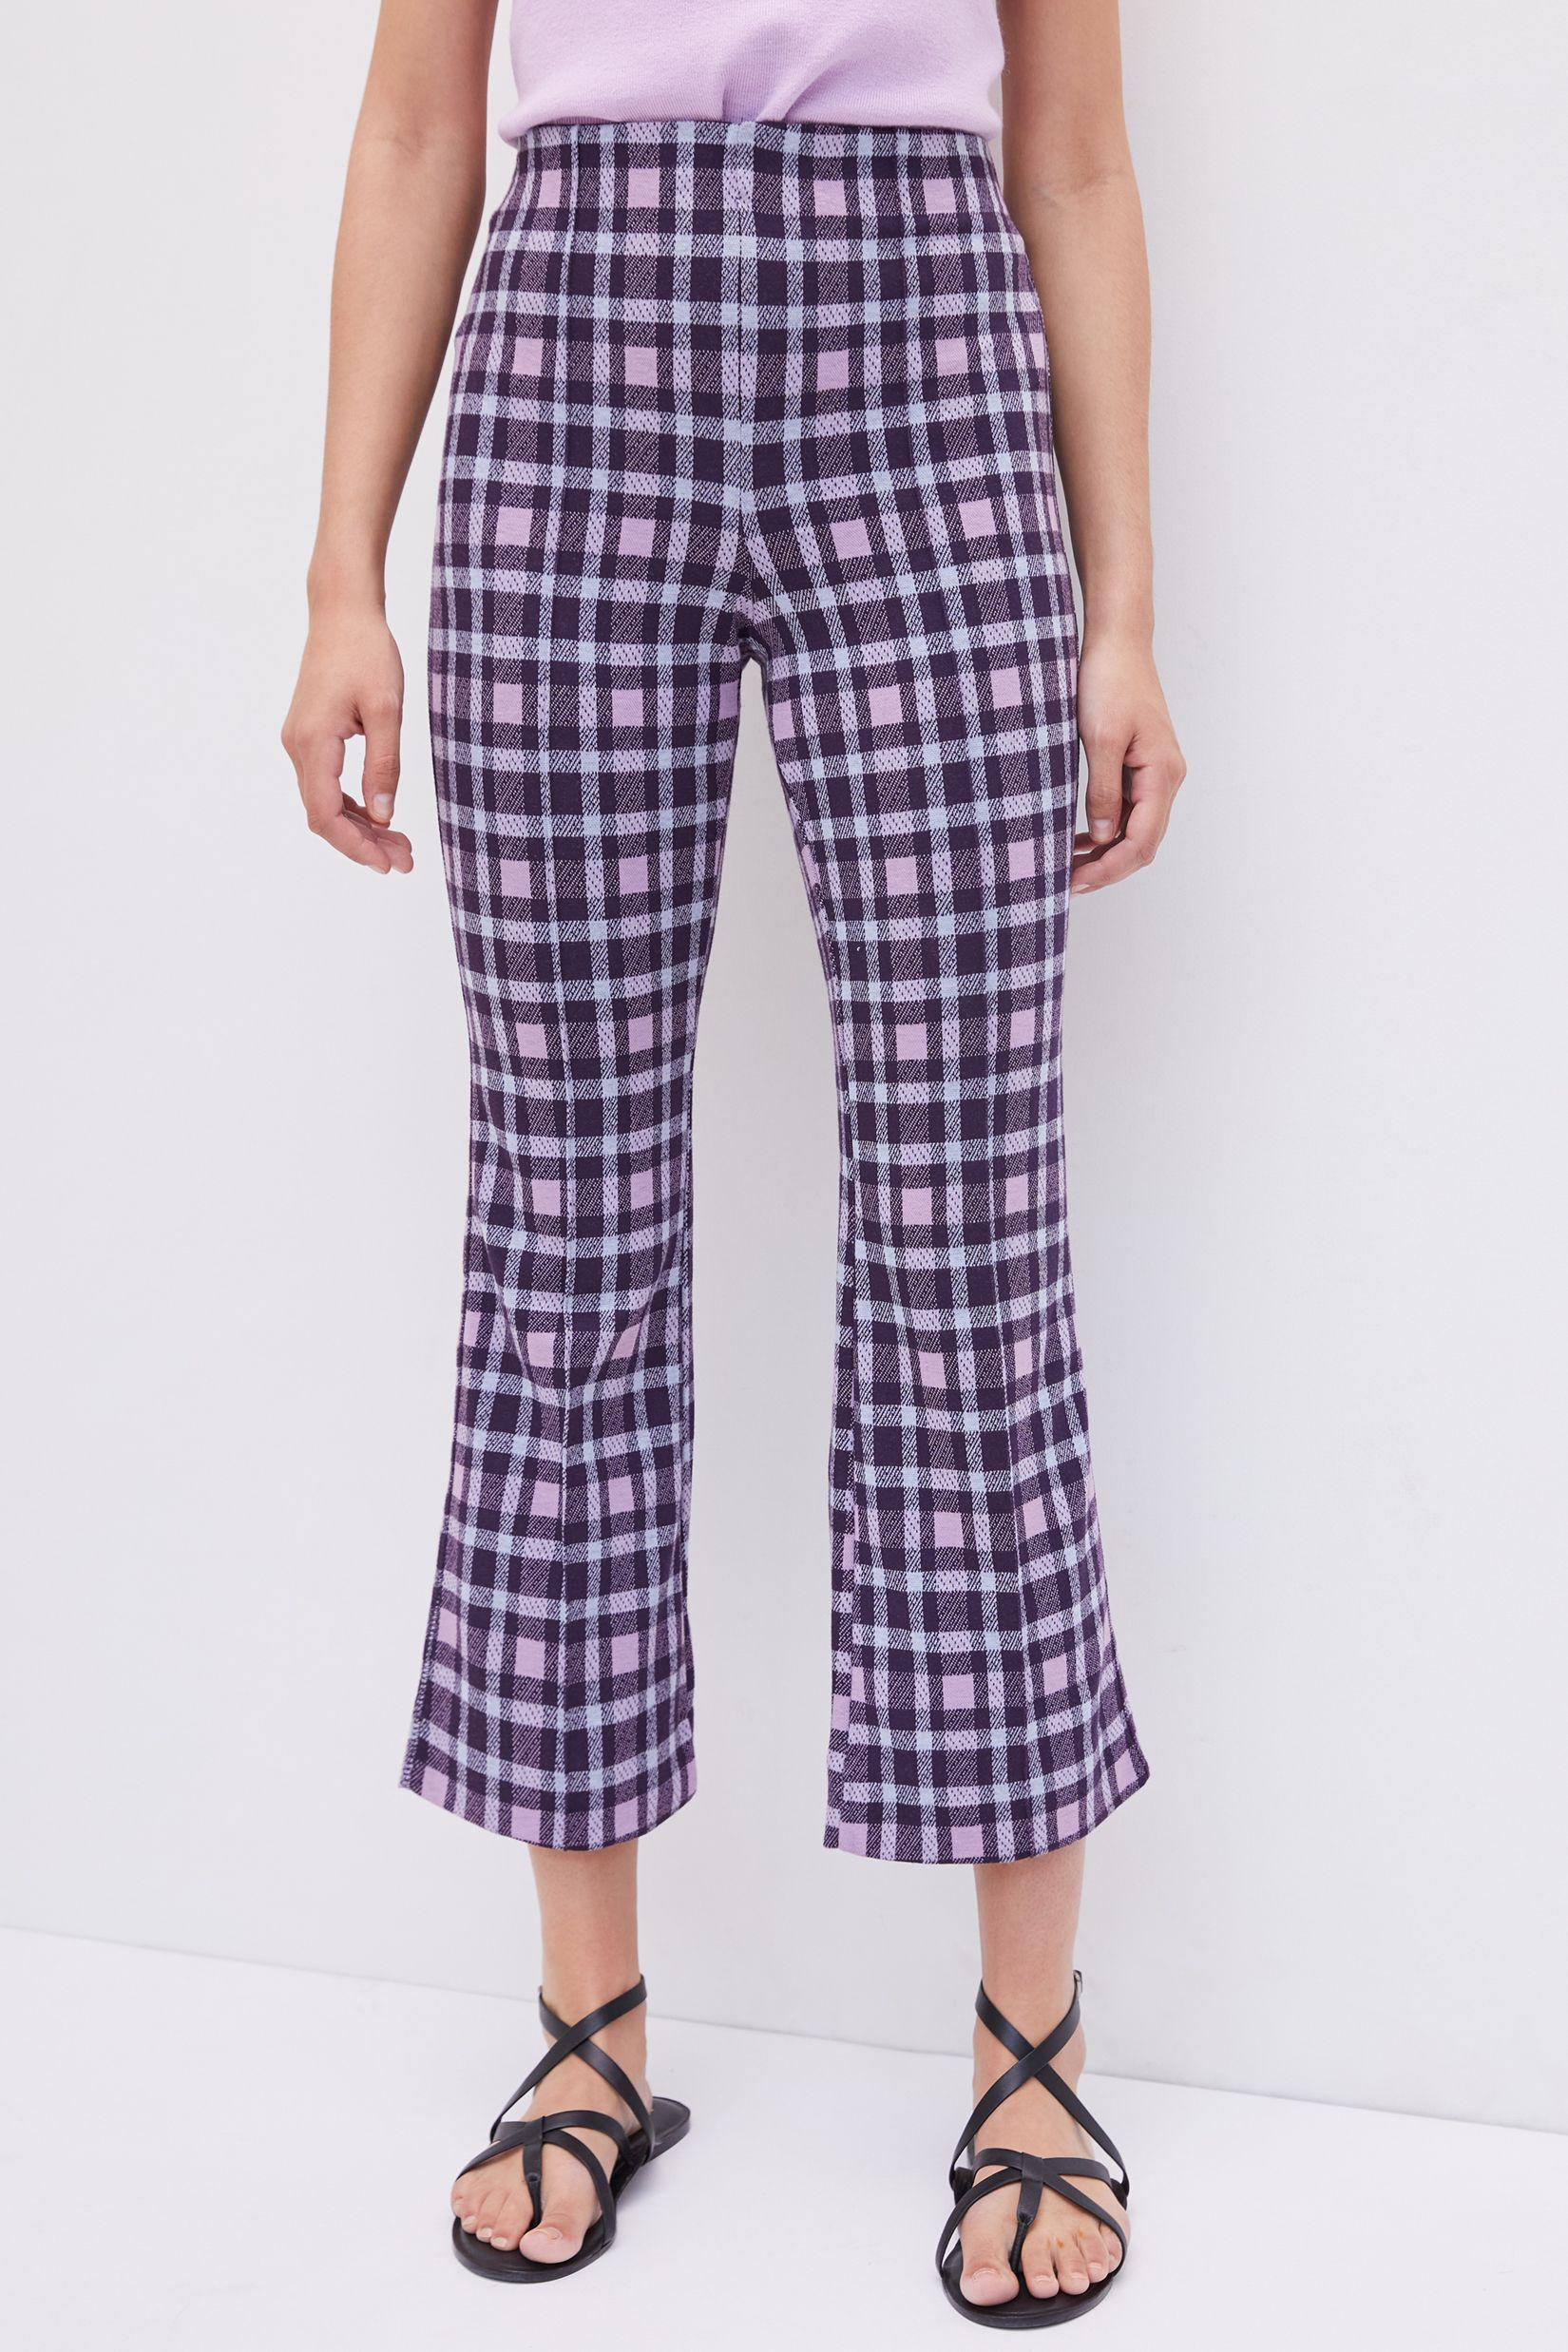 Maeve Cropped Flare Pants 2